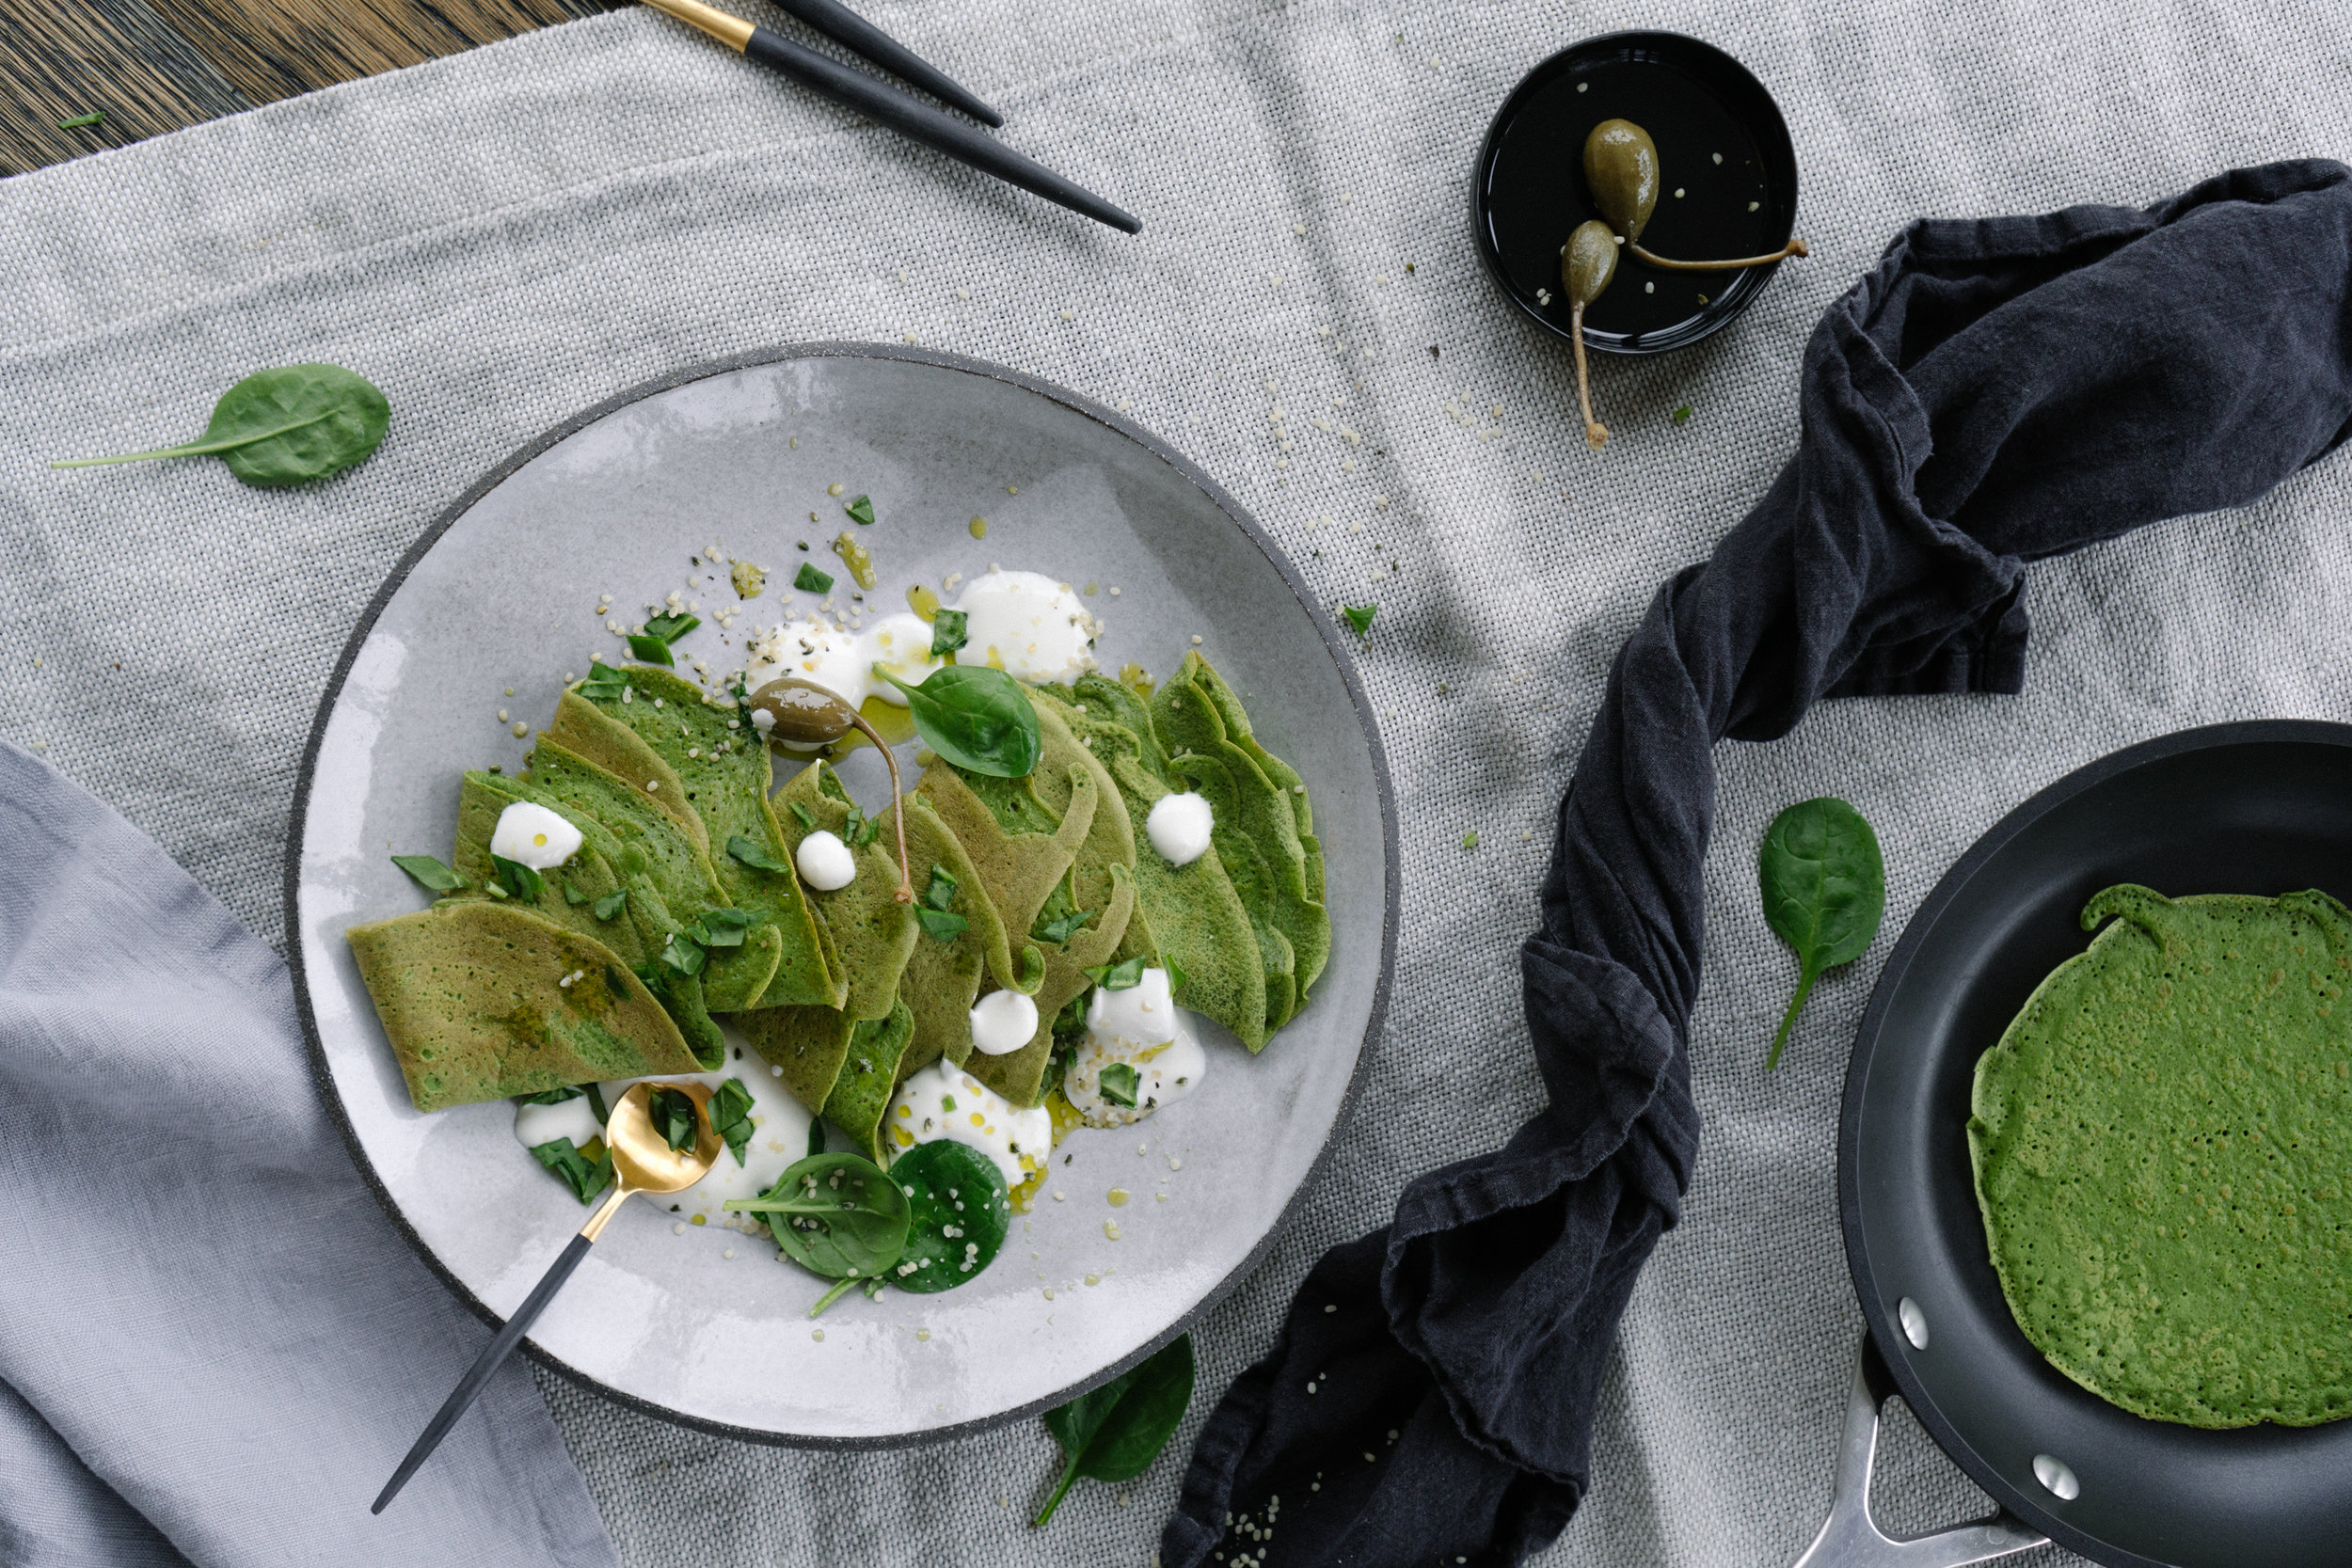 Hemp_Protein_and_Spinach_Crepes_with_Hard_Cheese-2.jpg